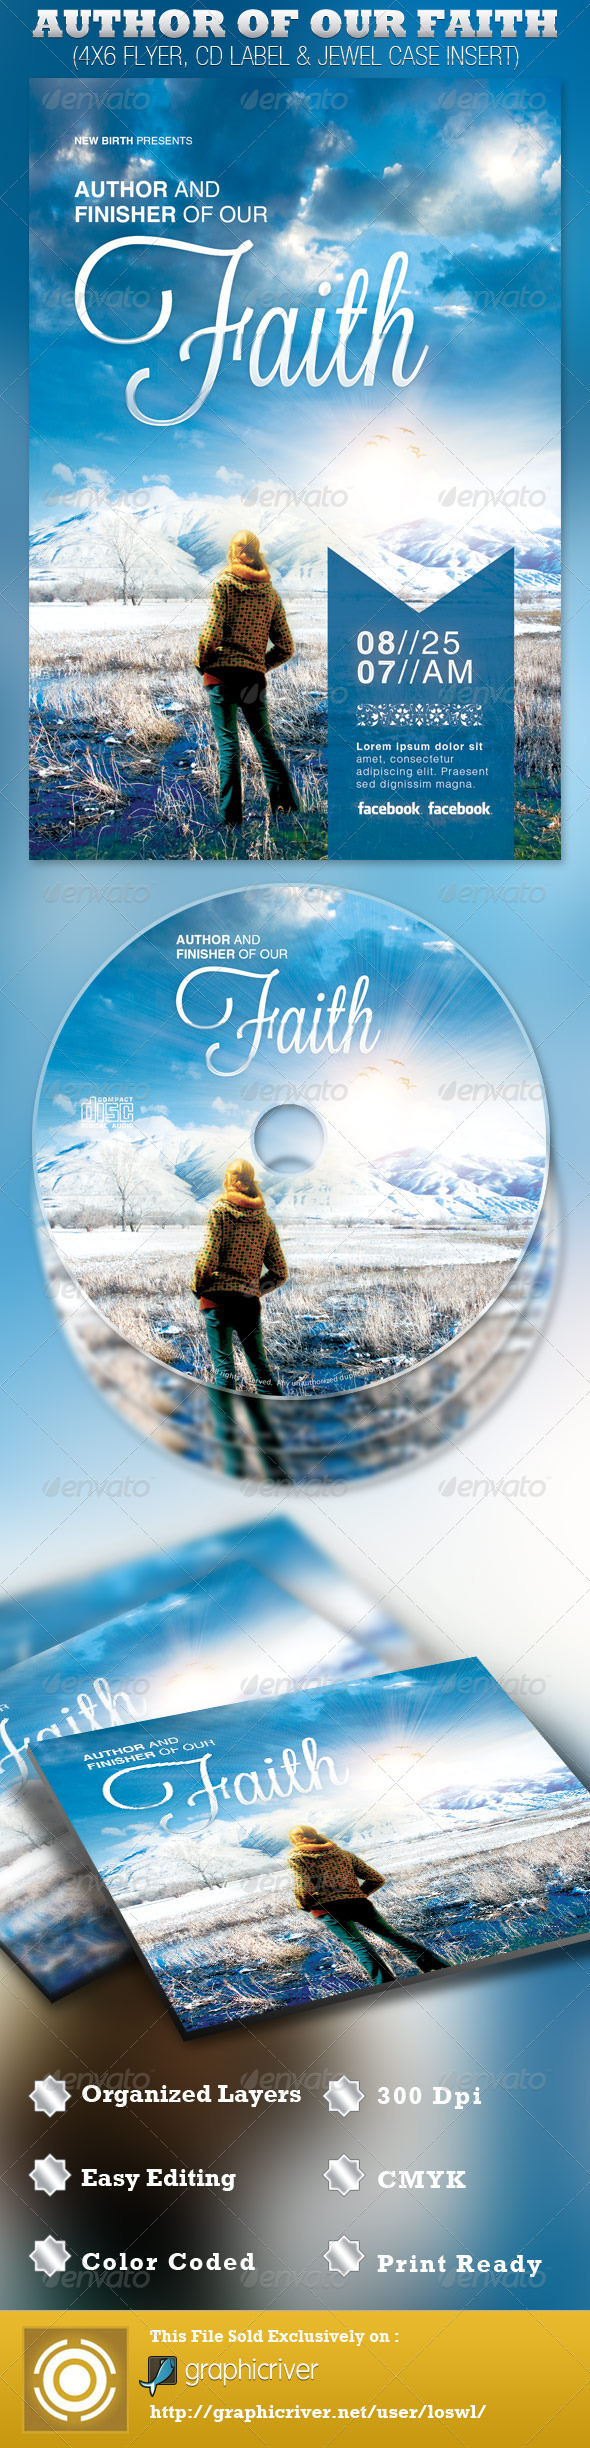 Author of Our Faith Church Flyer and CD Template - Church Flyers